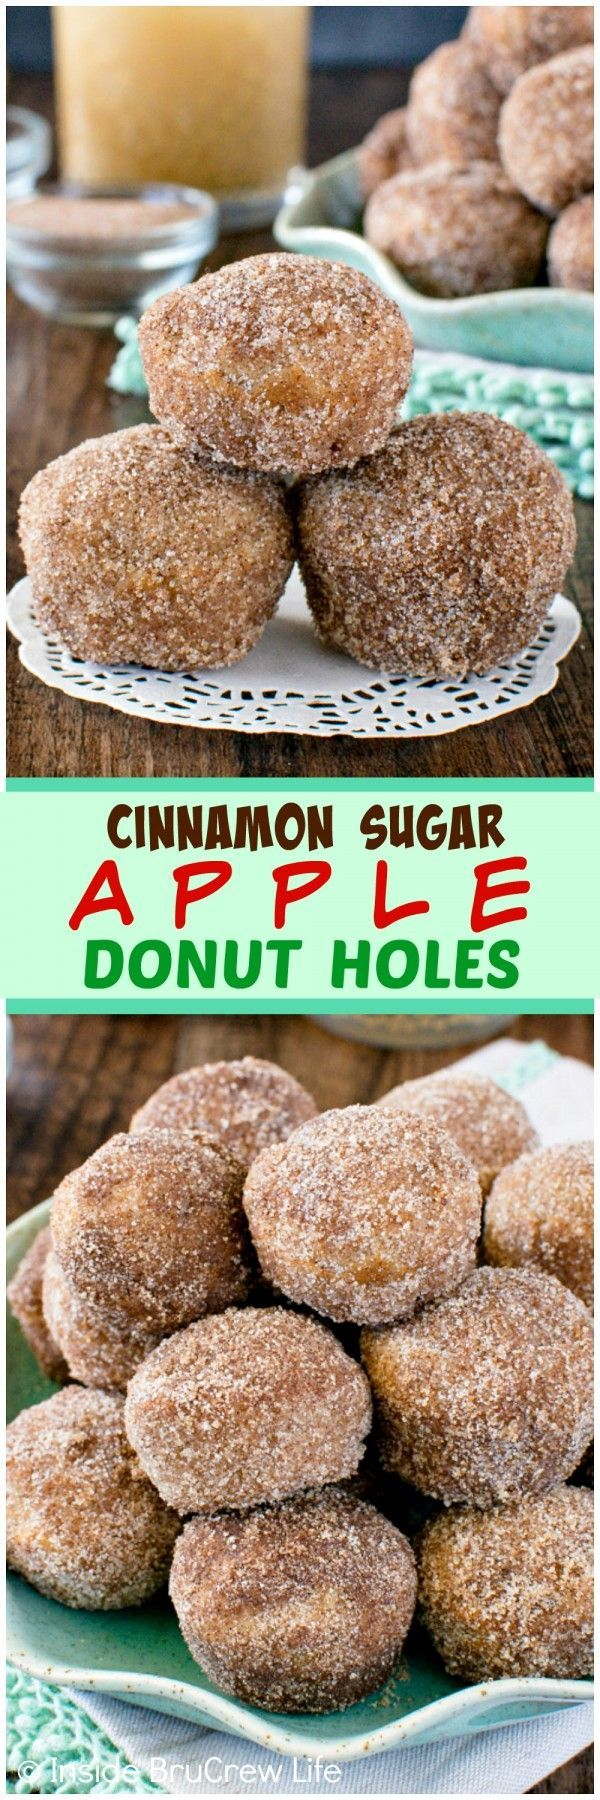 Attractive Cinnamon Sugar Apple Donut Holes   Inside BruCrew Life